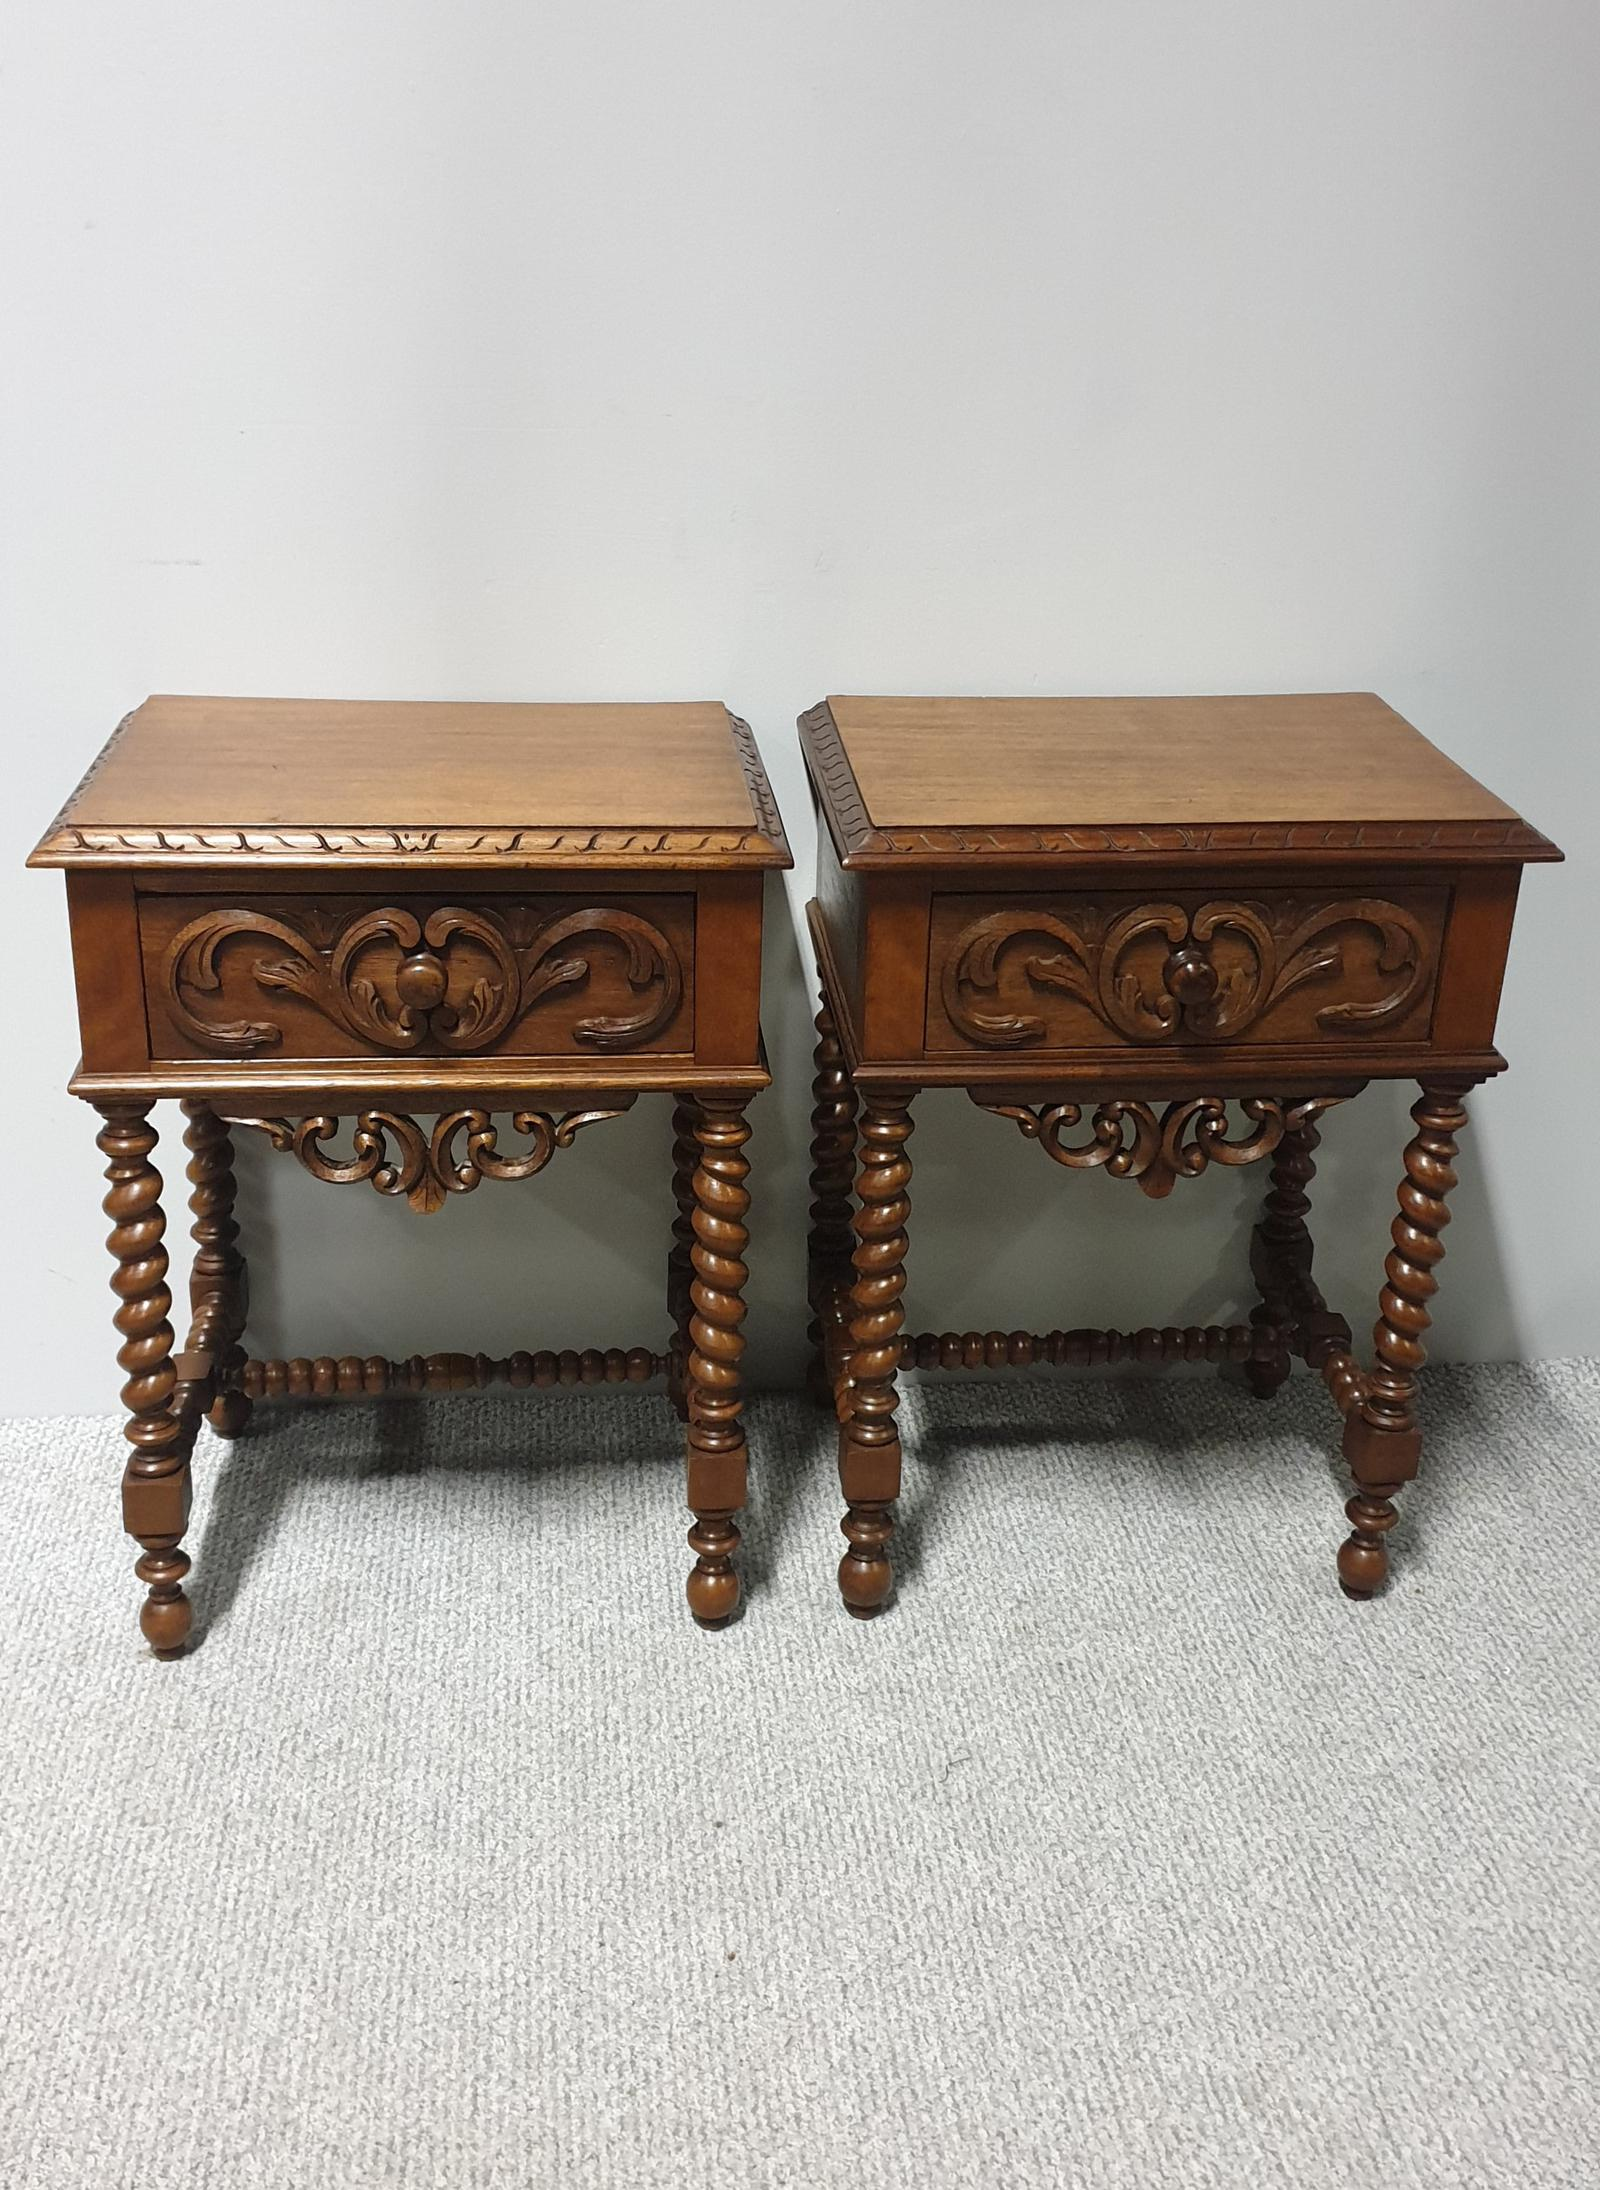 Pair of French Walnut Bedside Lamp Tables (1 of 1)